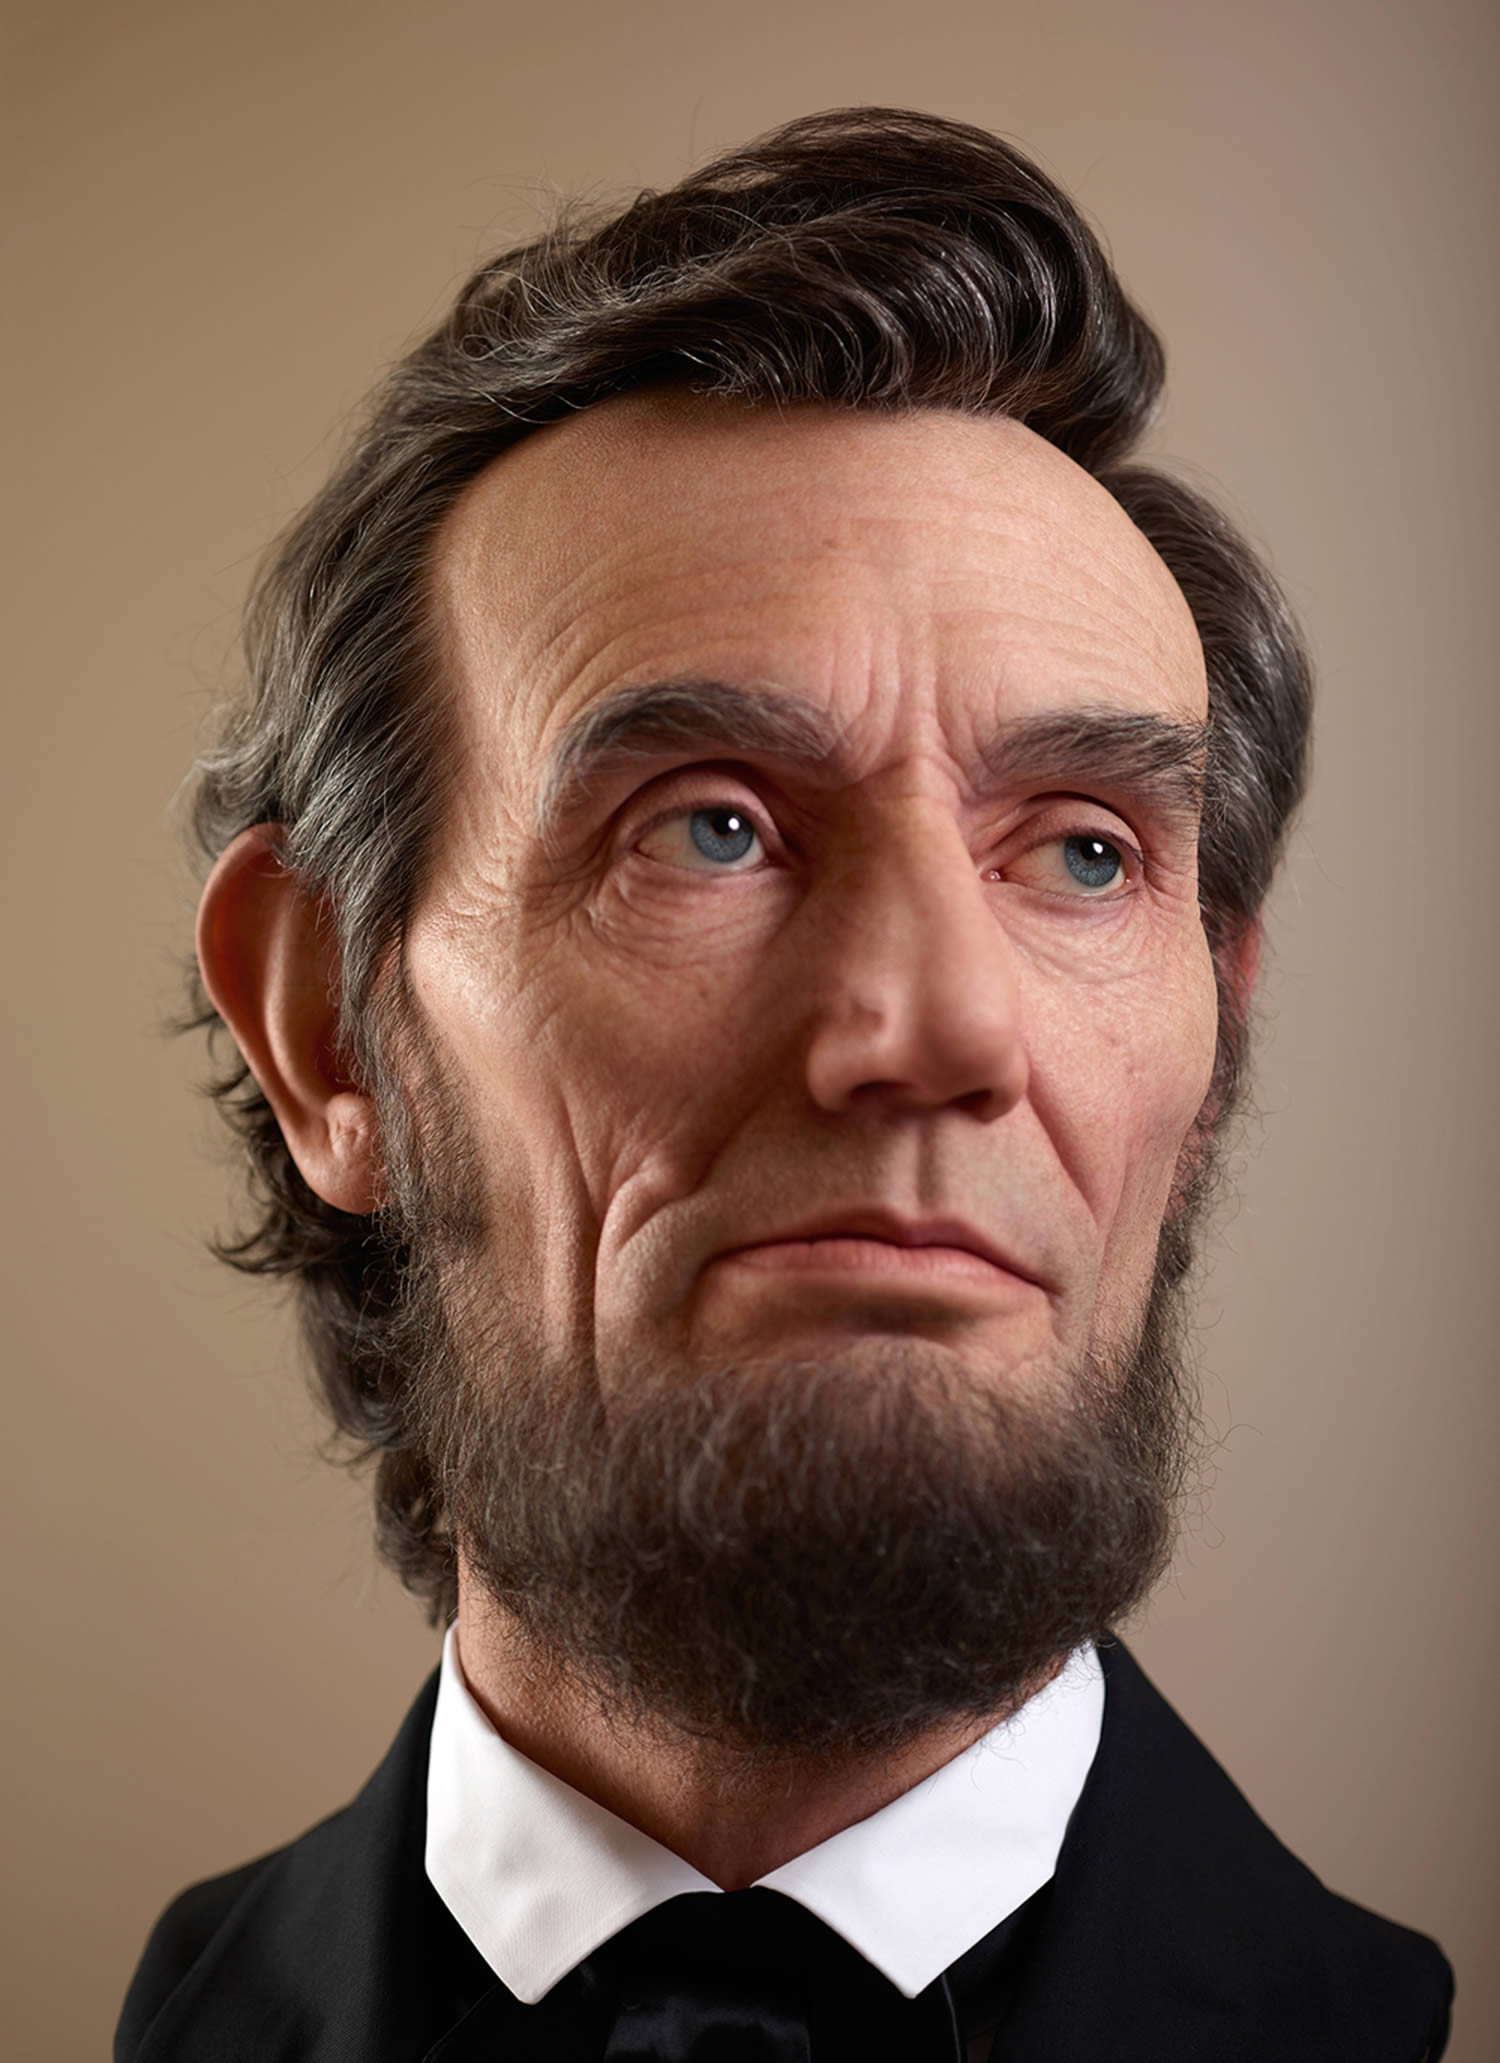 abraham lincoln hyperrealistic sculpture